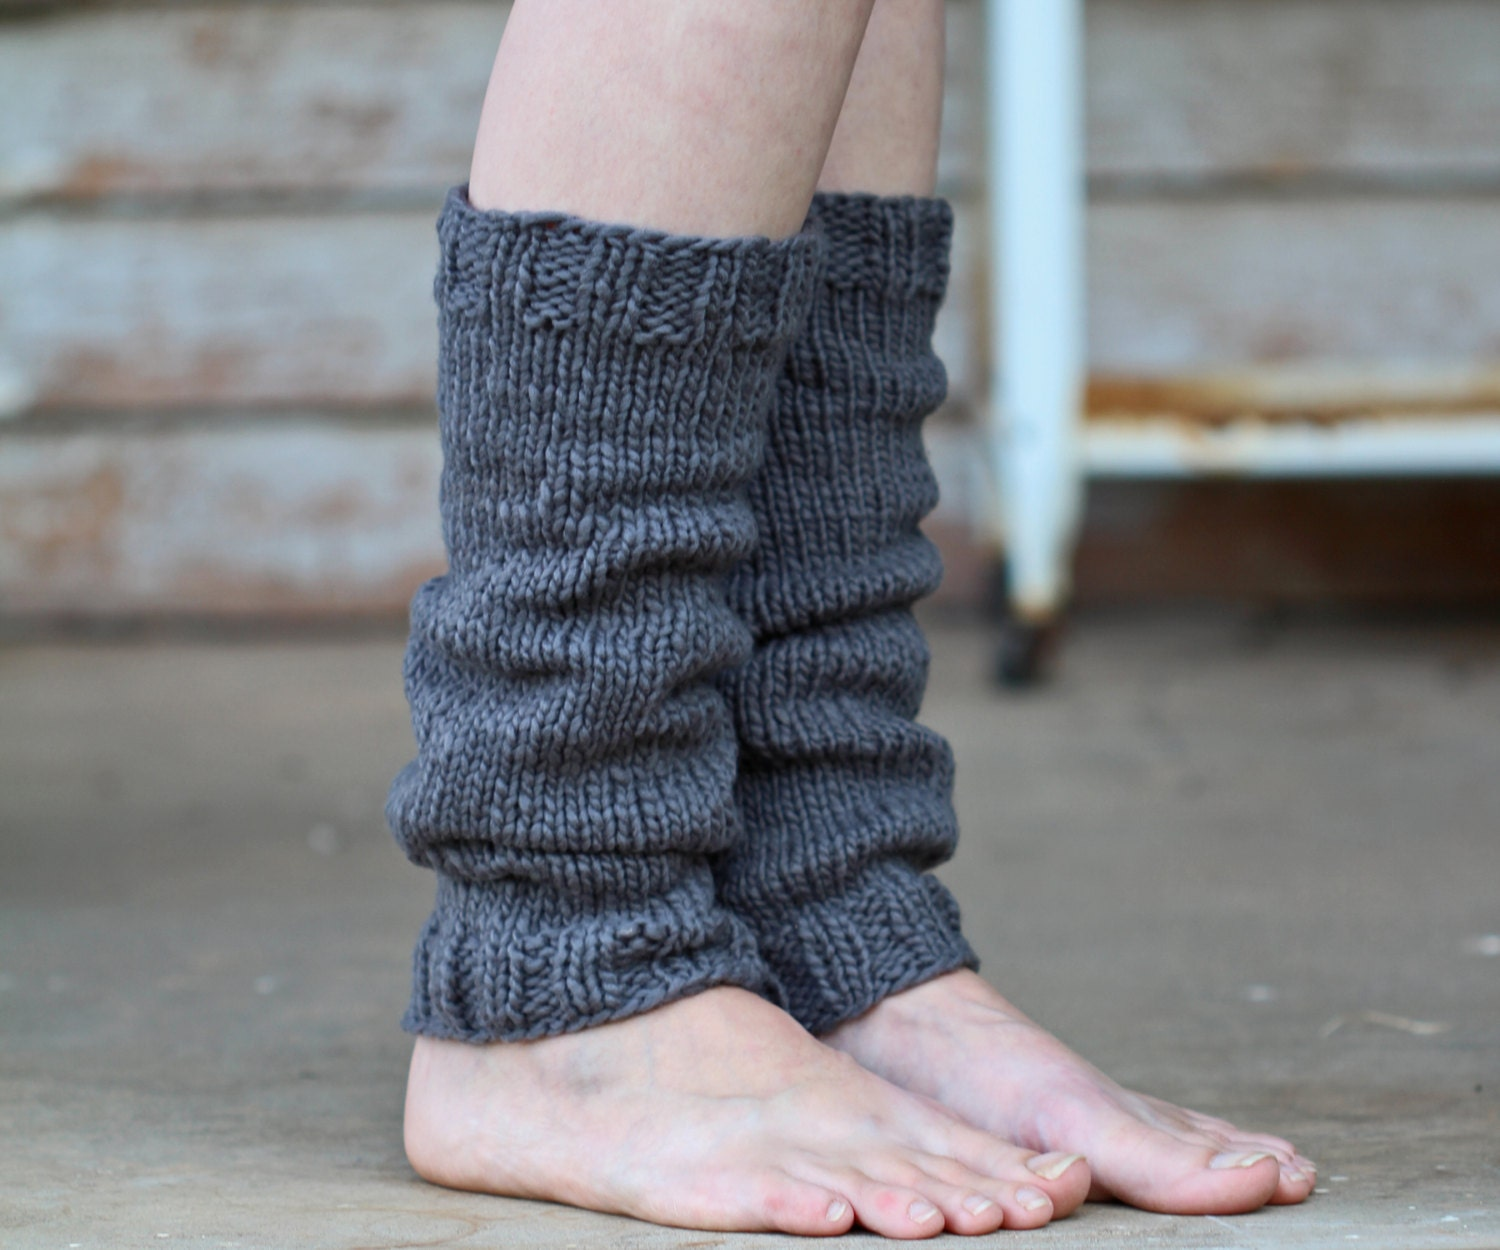 Knitting Leg Warmers Pattern : Leg Warmers Knitting Pattern MEEK a set of INSTRUCTIONS to